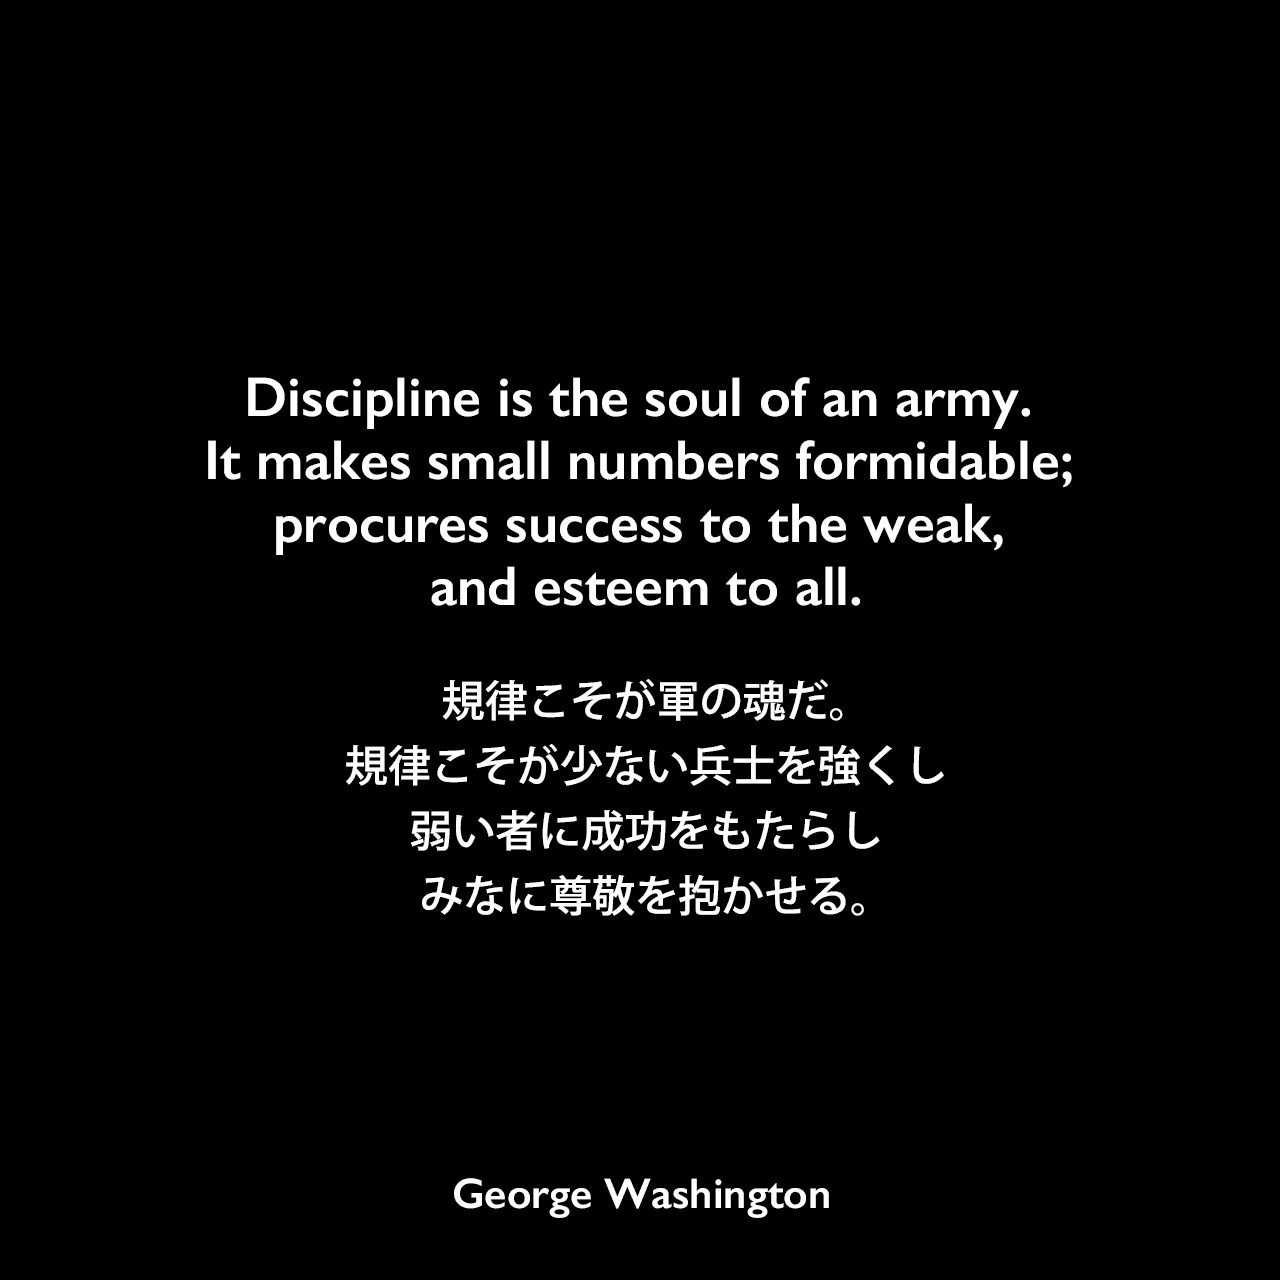 Discipline is the soul of an army. It makes small numbers formidable; procures success to the weak, and esteem to all.規律こそが軍の魂だ。規律こそが少ない兵士を強くし、弱い者に成功をもたらし、みなに尊敬を抱かせる。- バージニア州連隊隊長への指示書よりGeorge Washington